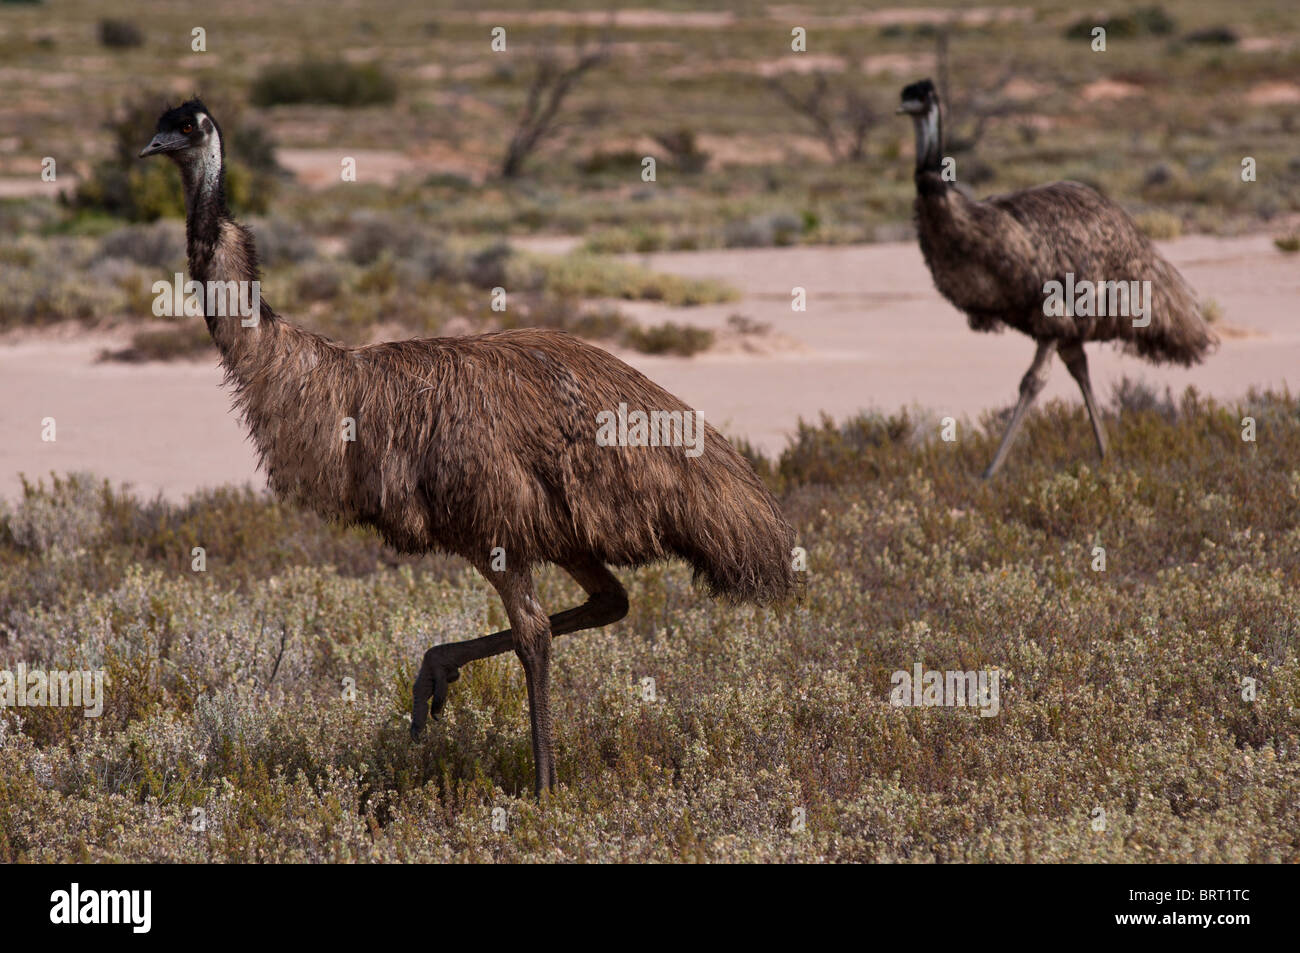 Emu roaming wild in desert country near Broken Hill in New South Wales - Stock Image